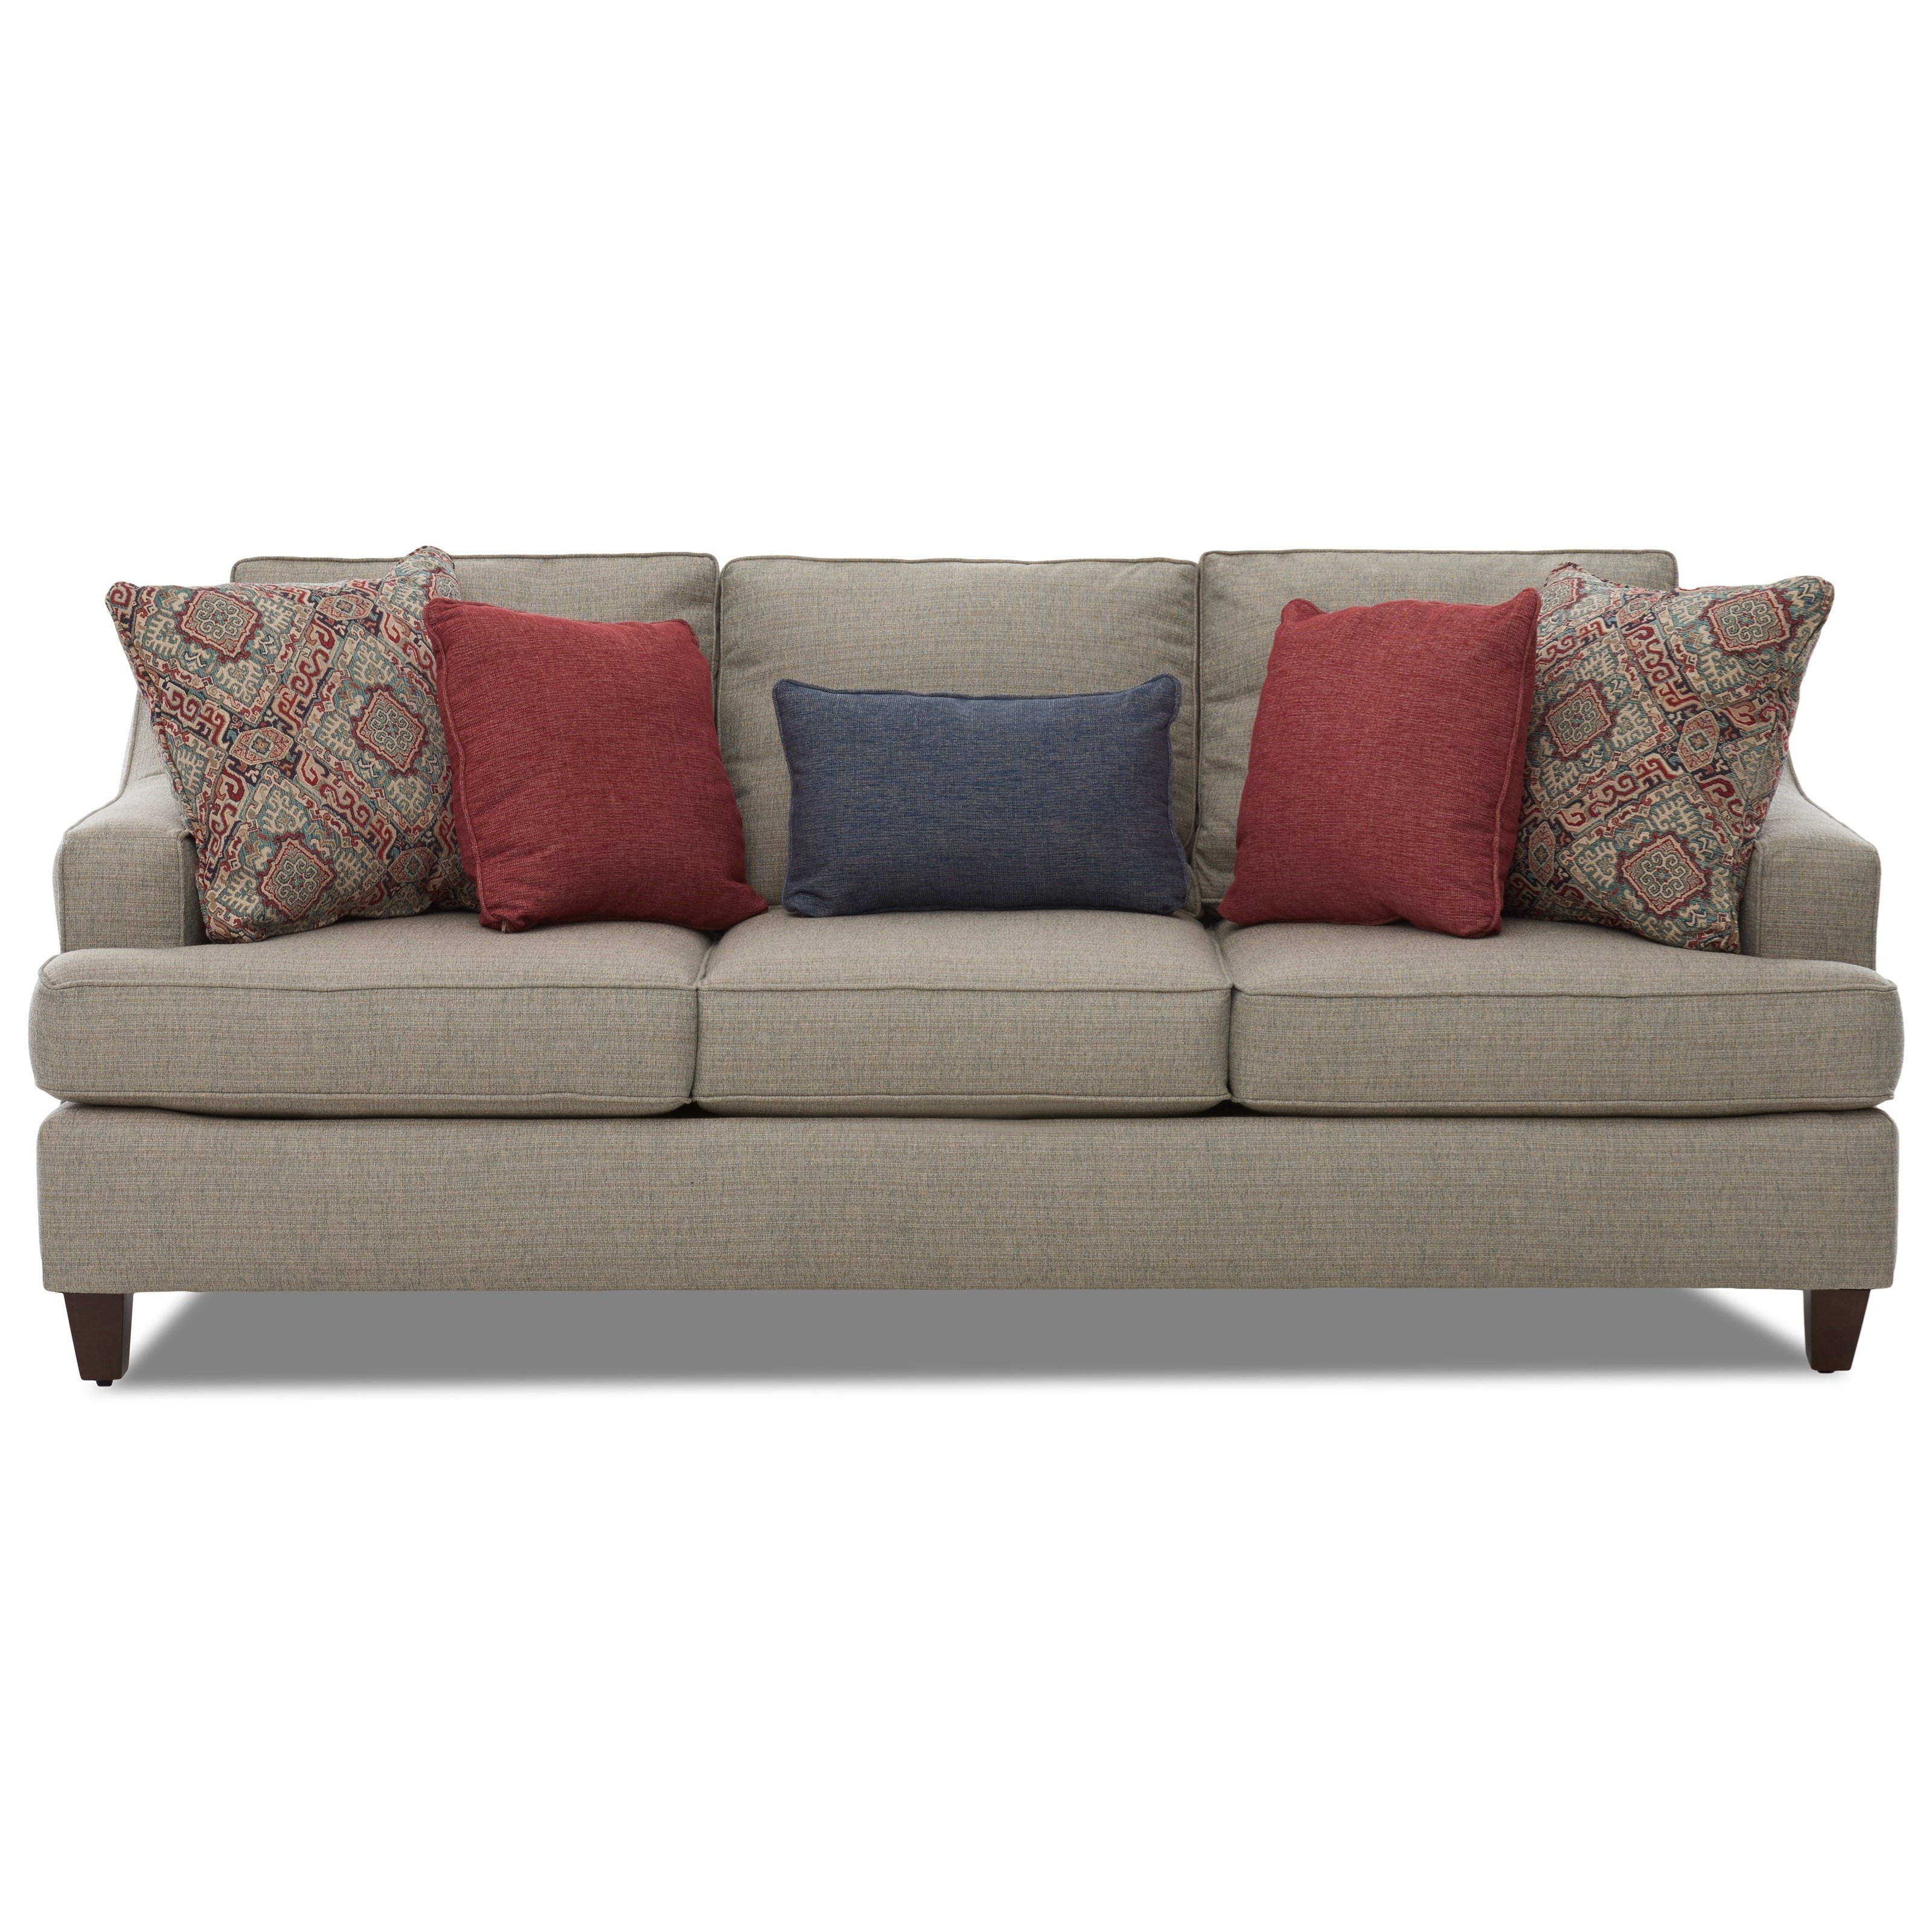 Marjorie Sofa by Klaussner at Northeast Factory Direct